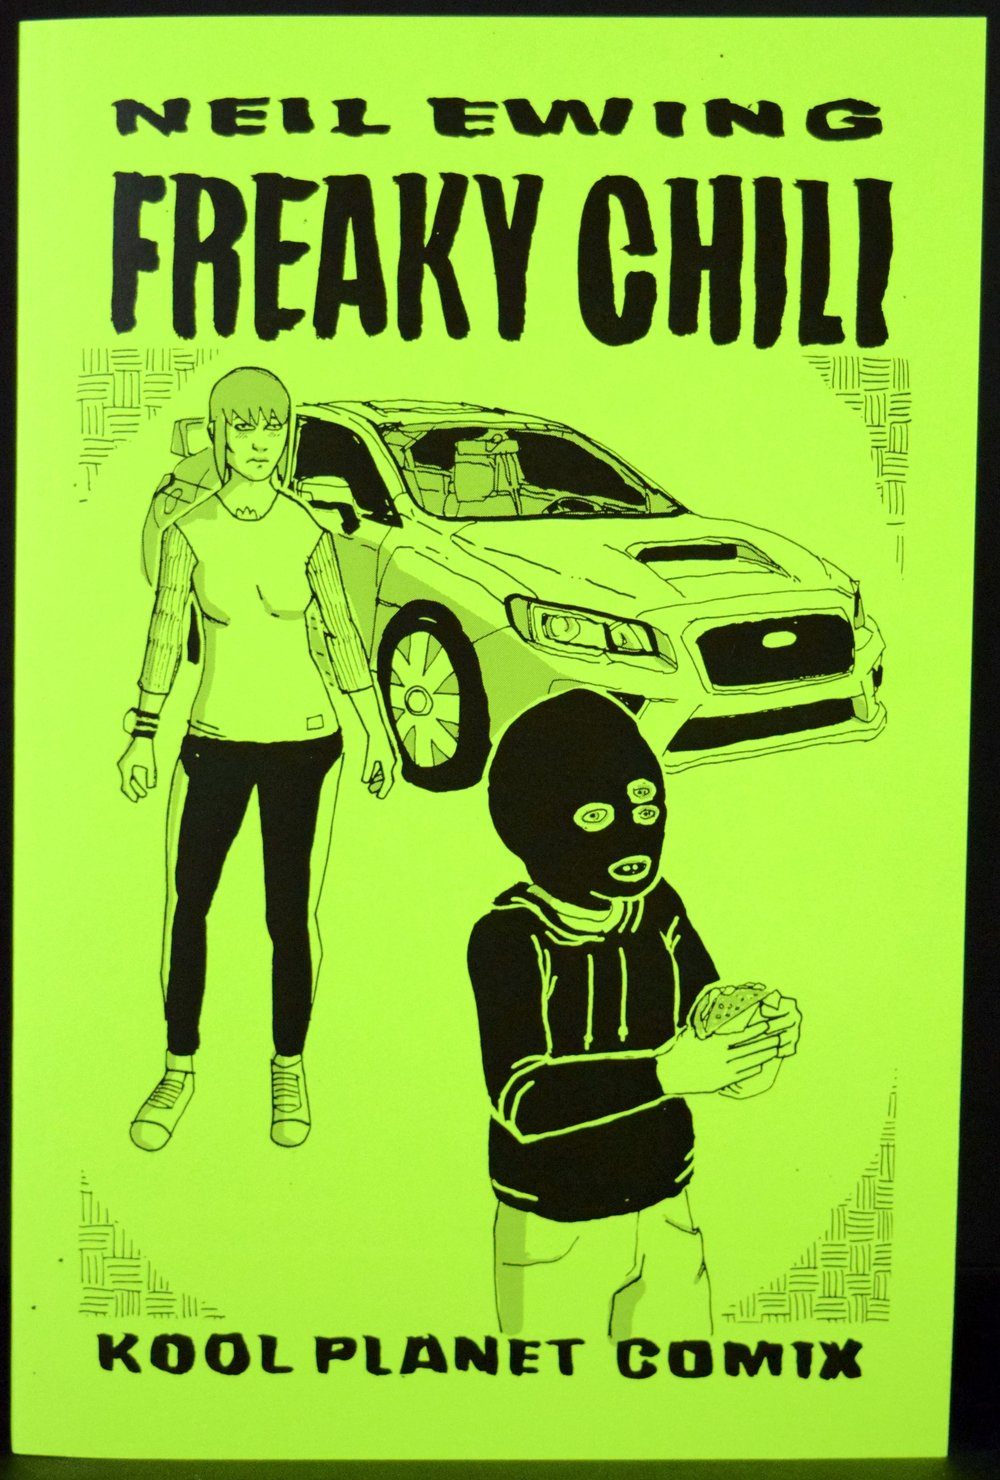 Freaky Chili  by  Neil Ewing .